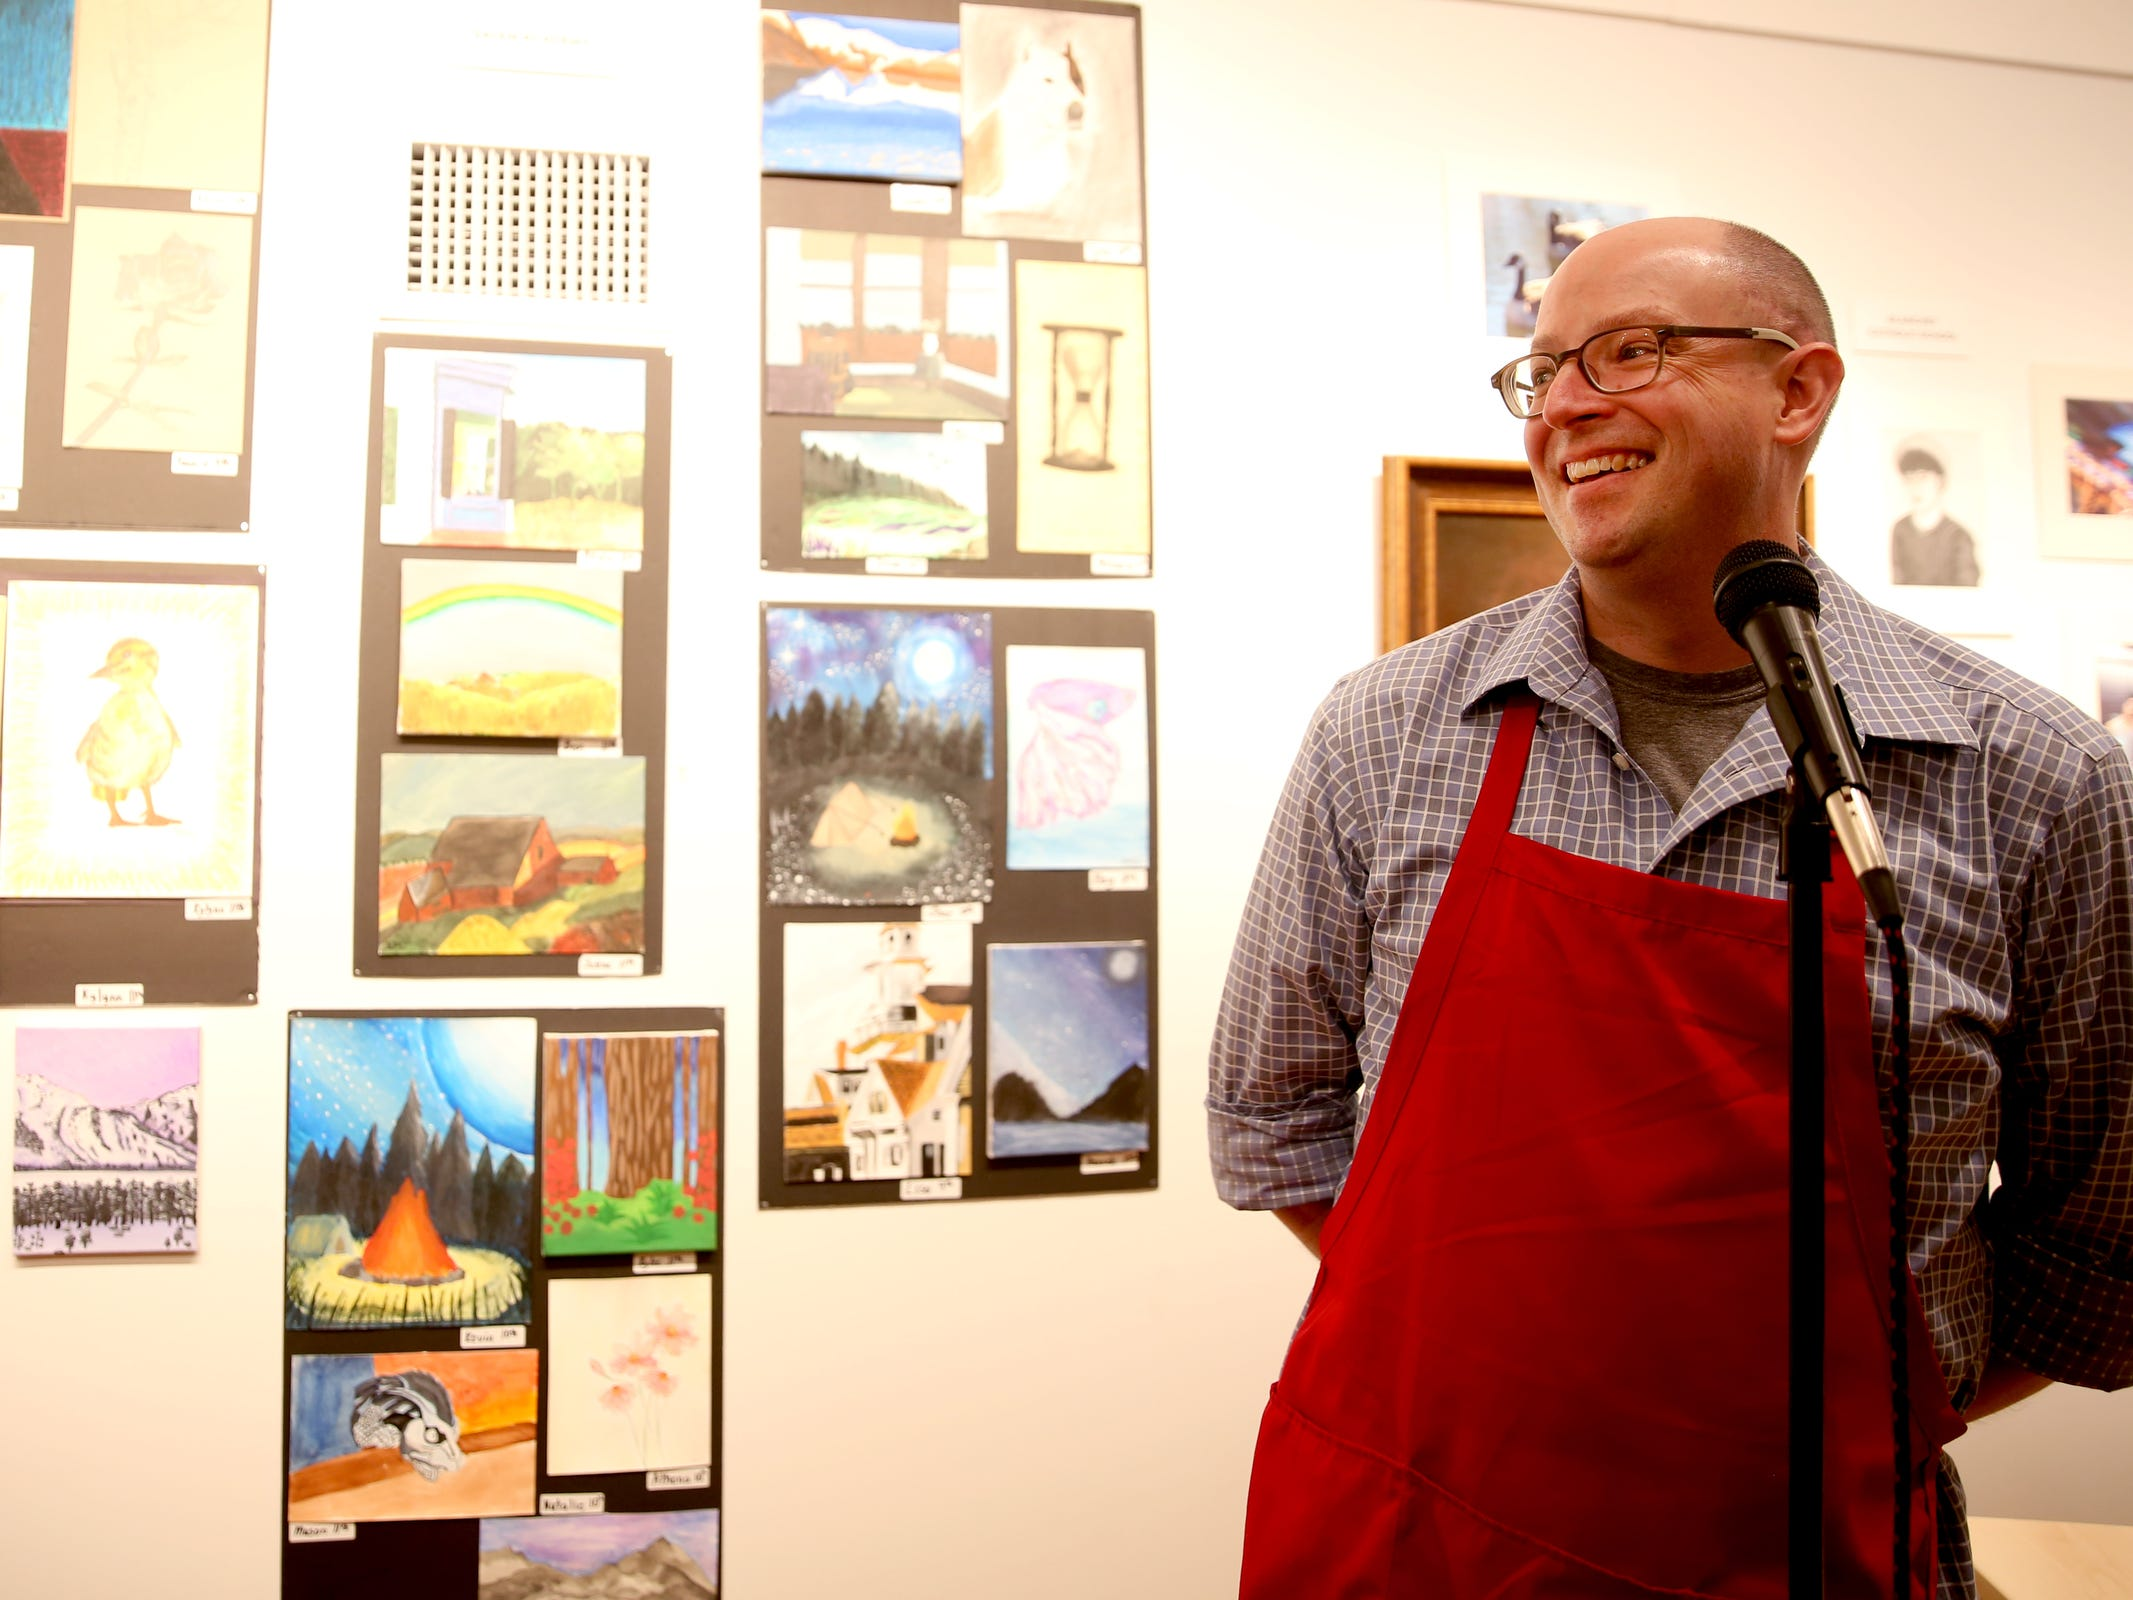 David Wilson, Gallery Director for the Salem Art Association, emcees the awards reception for the 10th annual Young Artists' Showcase at the Bush Barn Art Center in Salem on March 9, 2019. The exhibit features artwork by more than 400 students in Marion, Polk and Yamhill counties and runs through April 20.